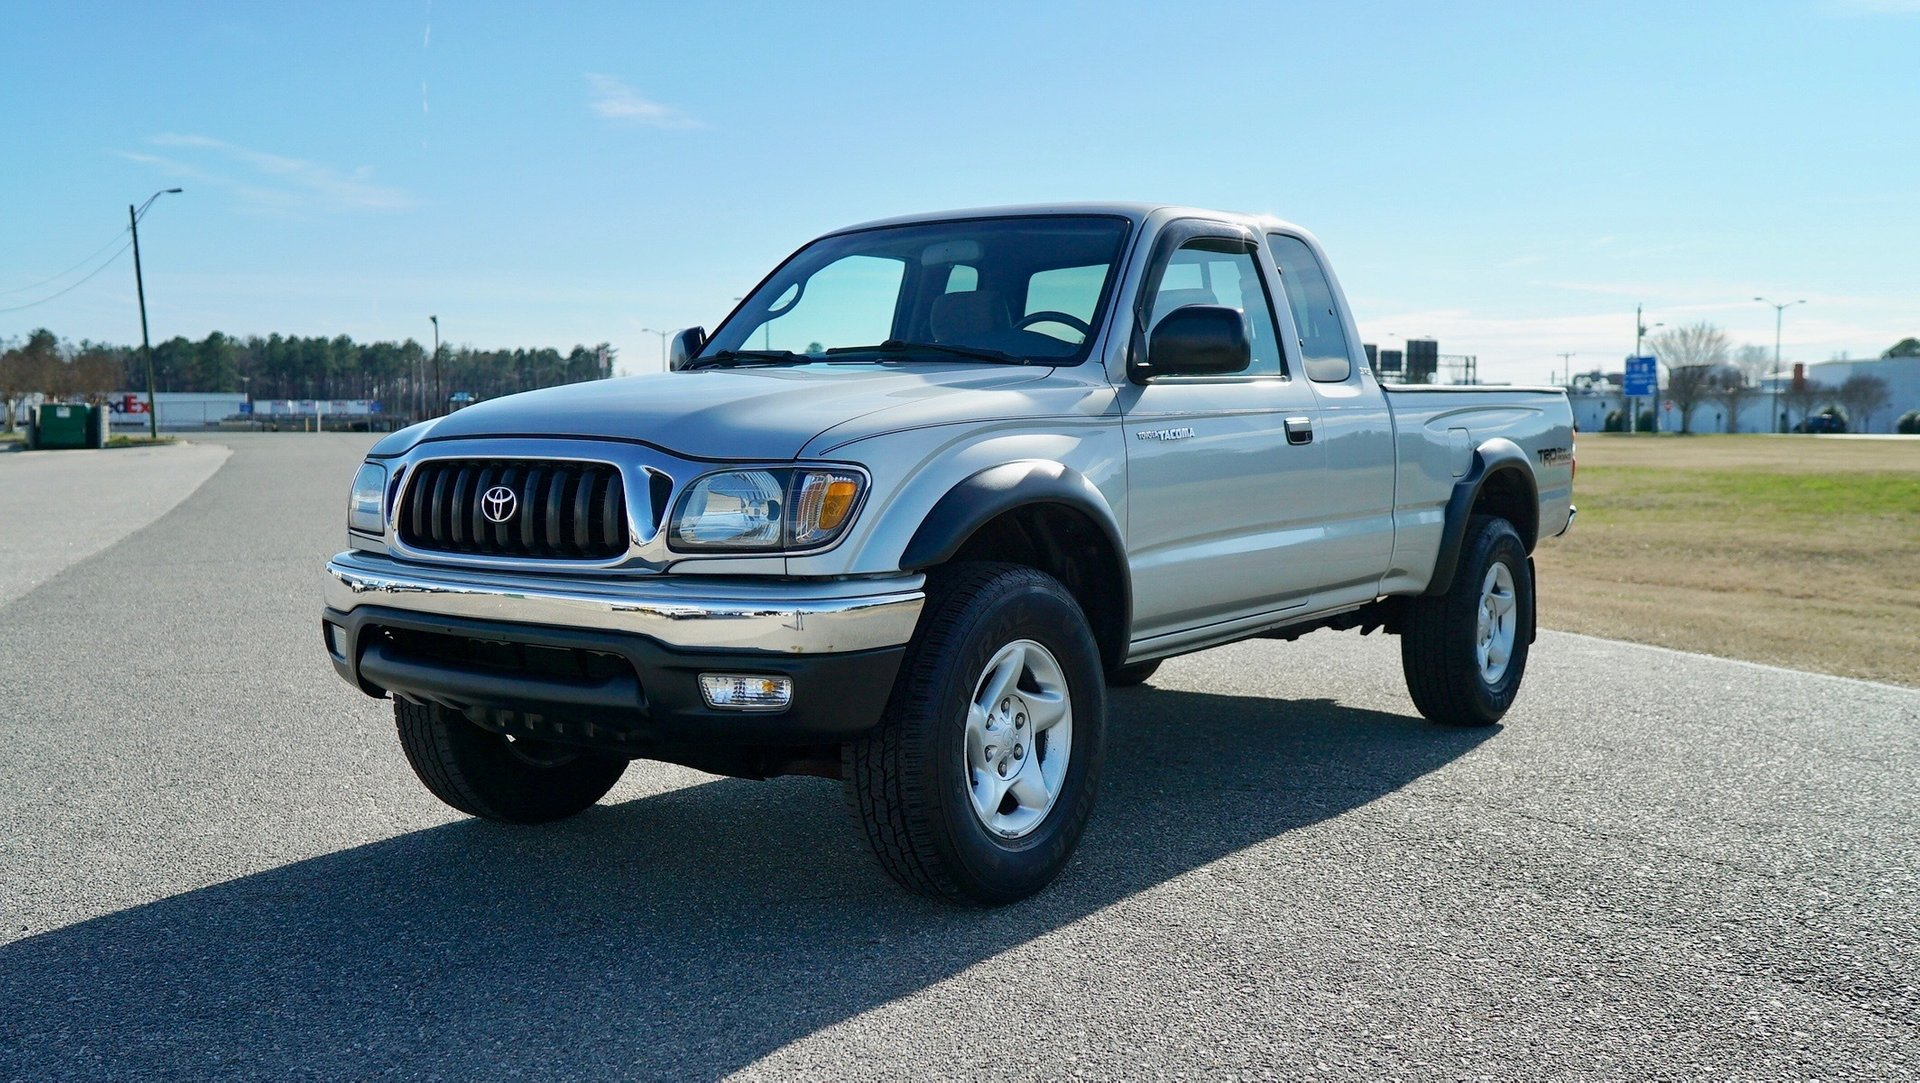 2003 toyota tacoma trd 5 speed 4x4